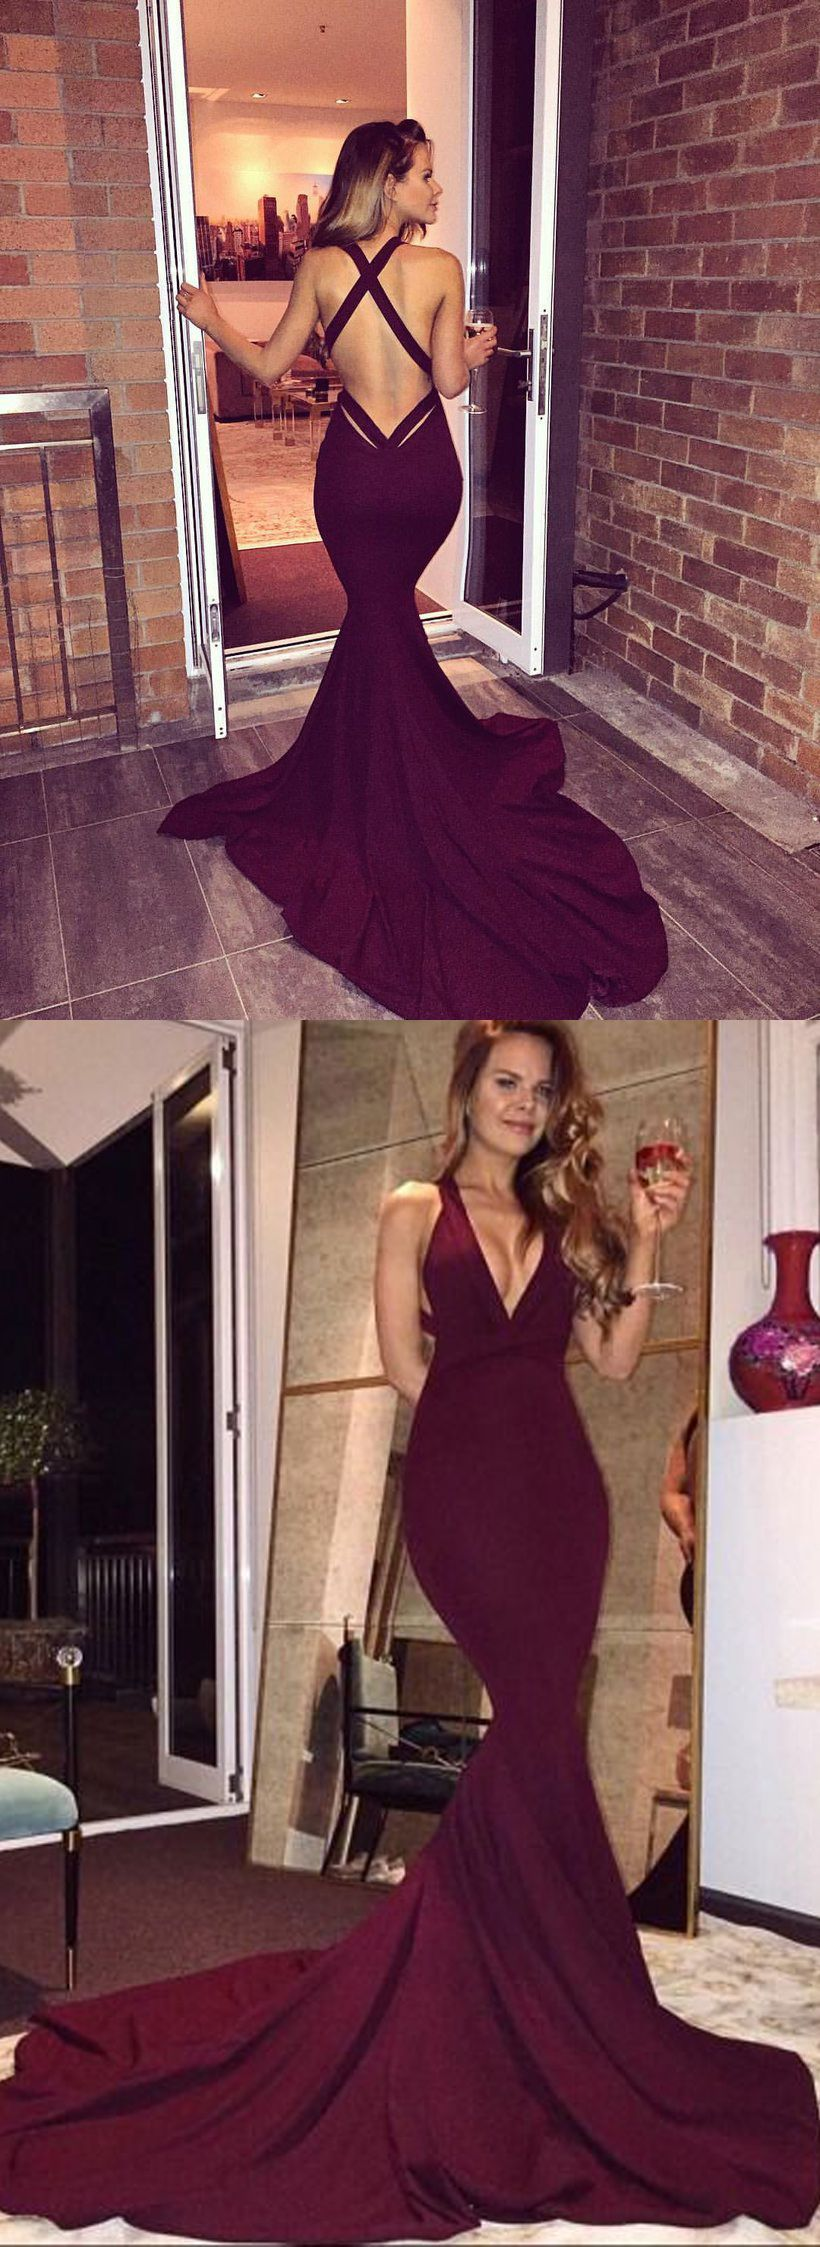 Mermaid style maroon deep vneck court train backless prom dress